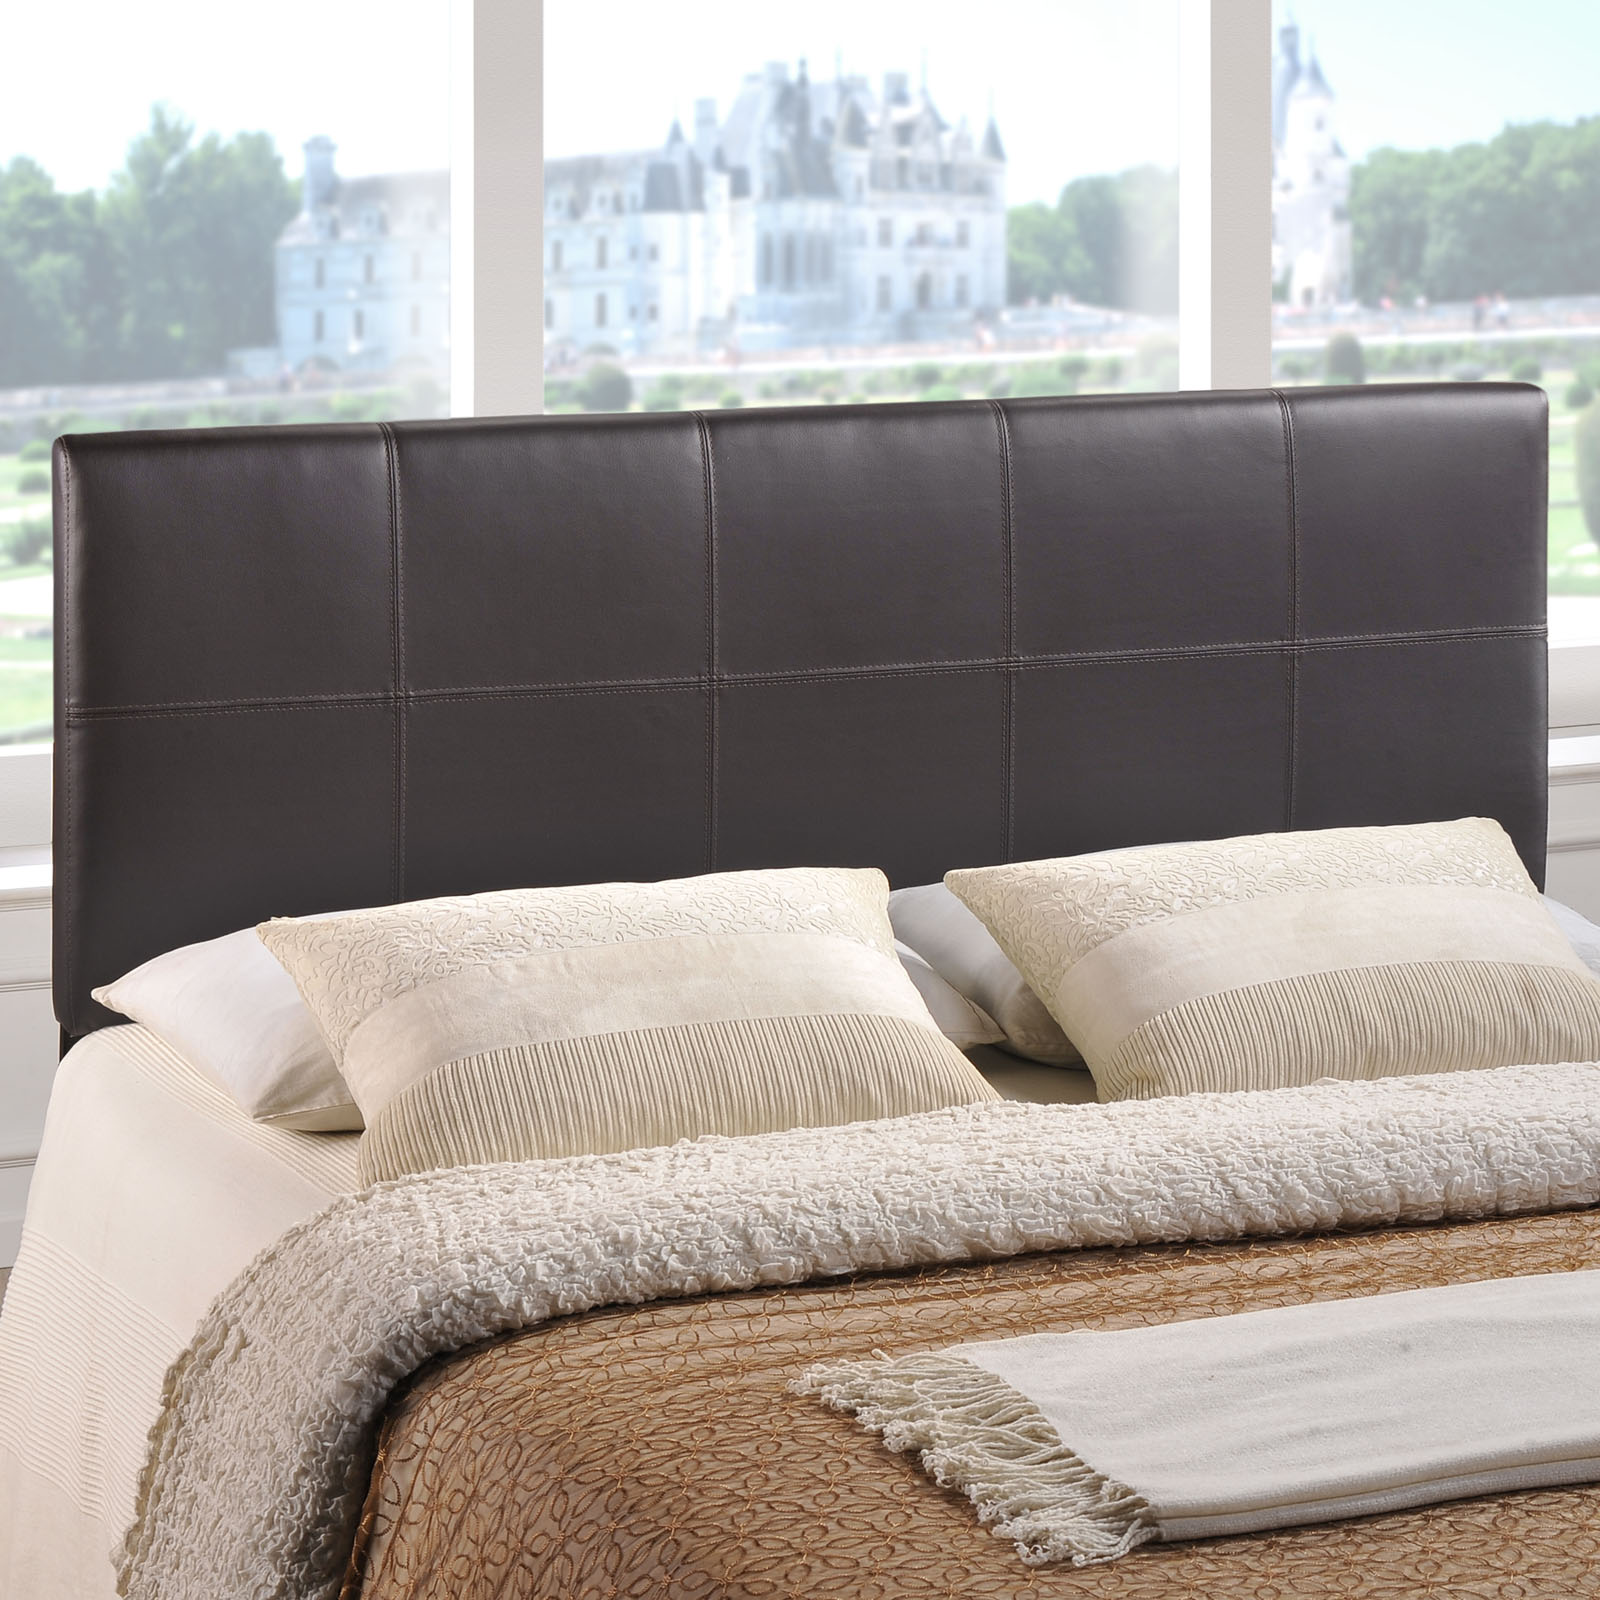 Modway Oliver Contemporary Headboard, Multiple Sizes and Colors